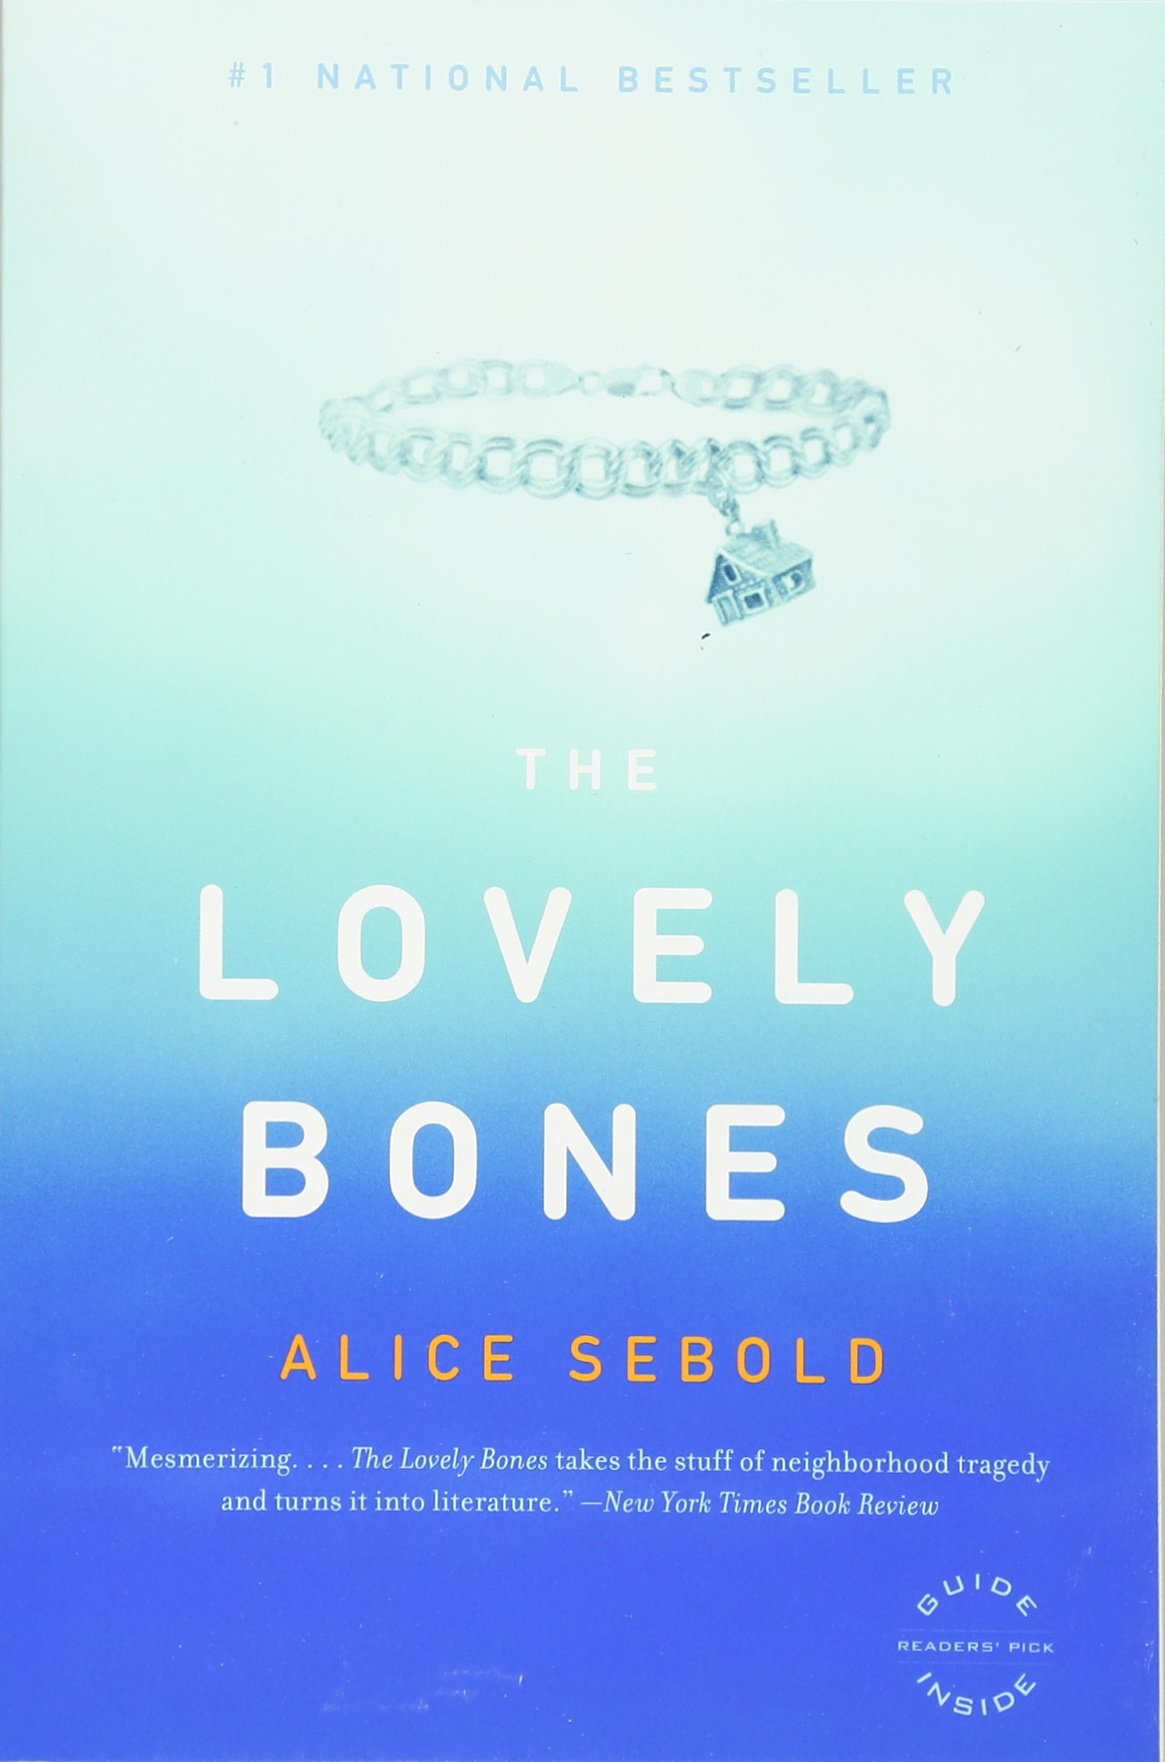 The Lovely Bones Novel by Alice Sebold